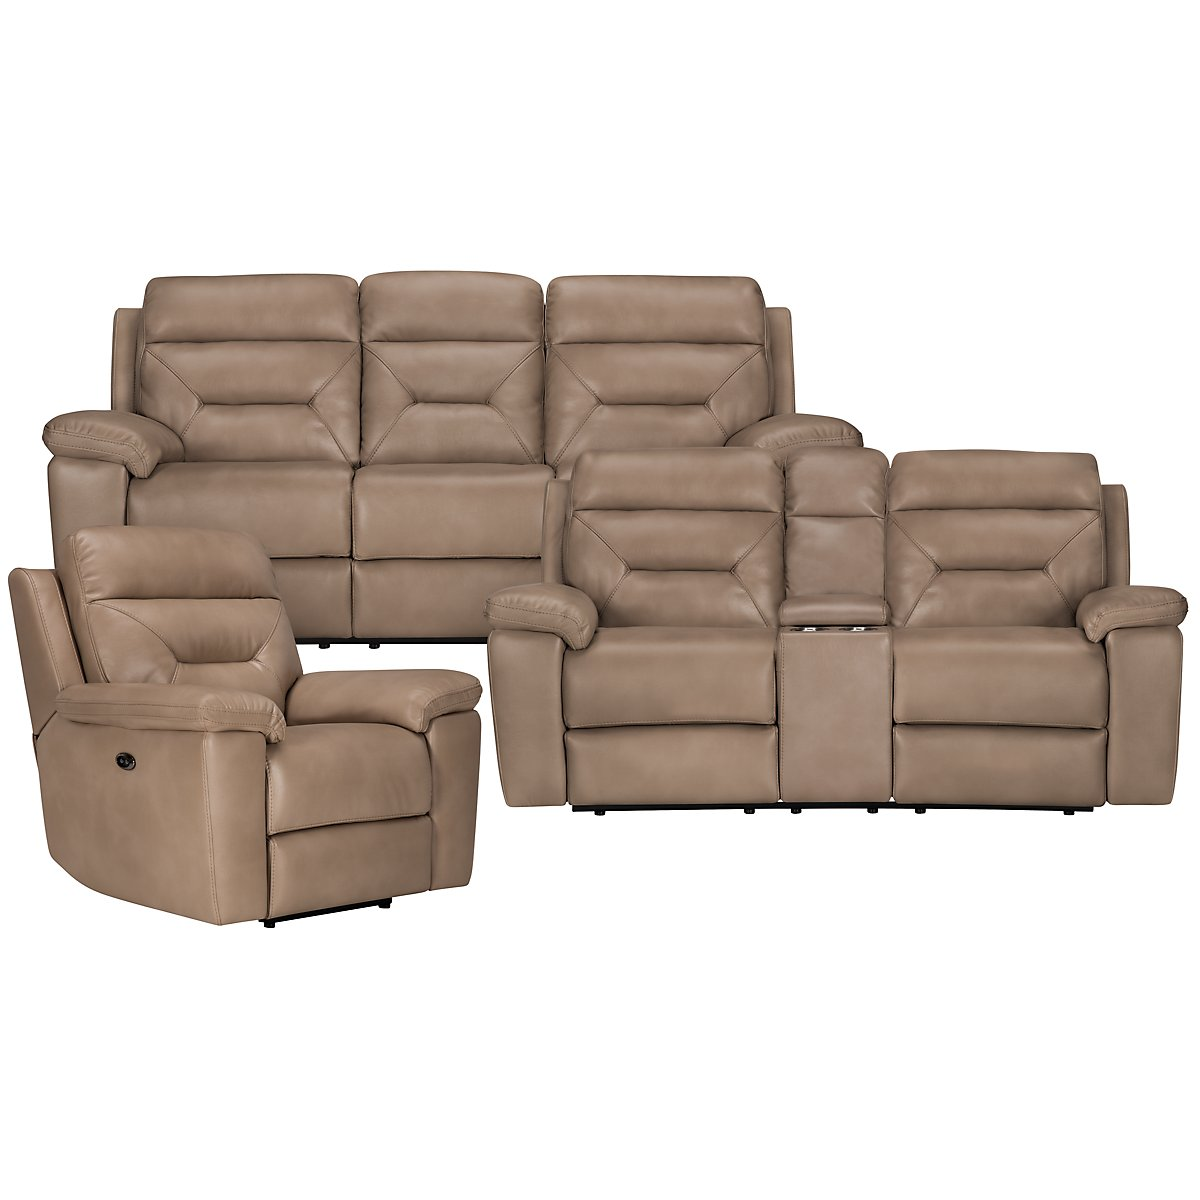 Phoenix Dark Beige Microfiber Power Reclining Living Room